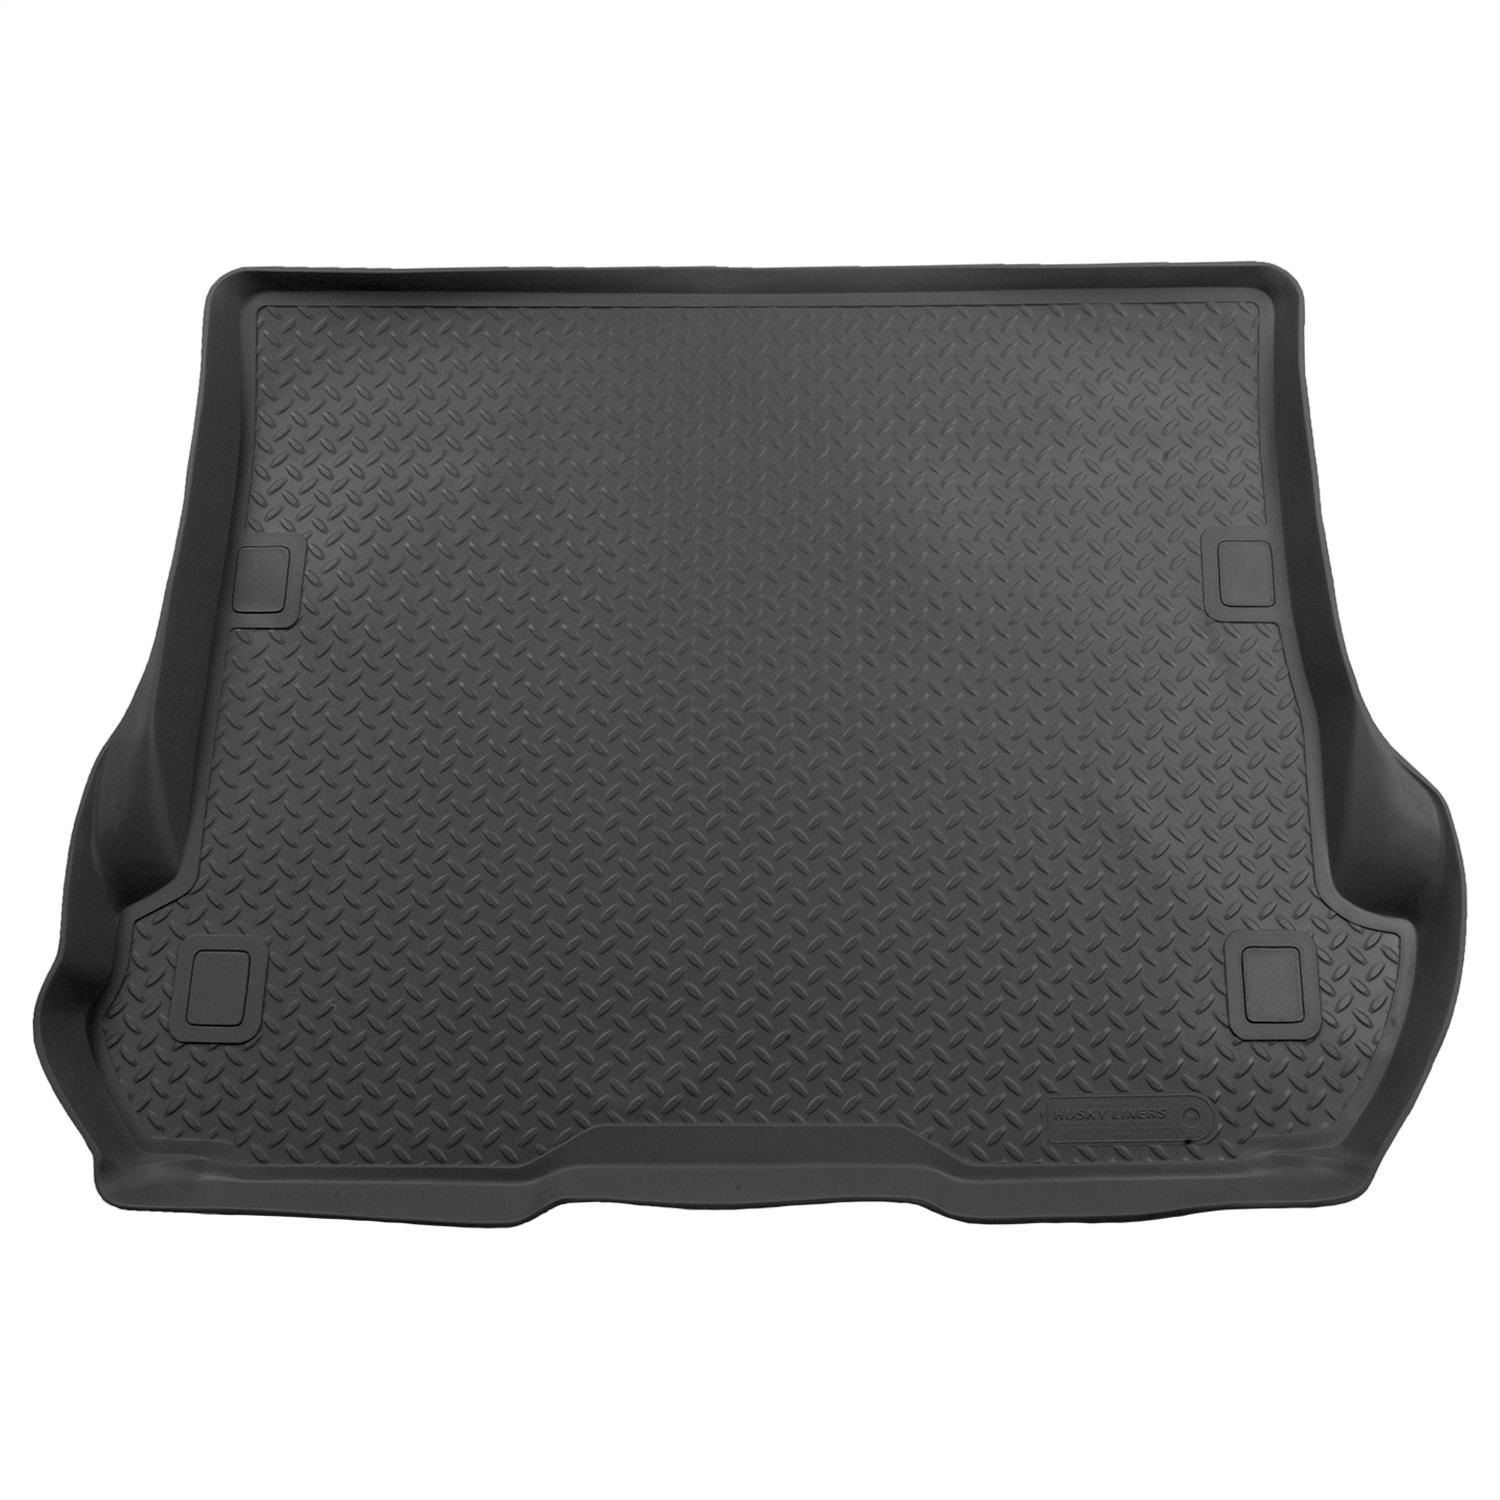 Husky Liners 24651 Classic Style Cargo Liner Fits 07-11 CR-V